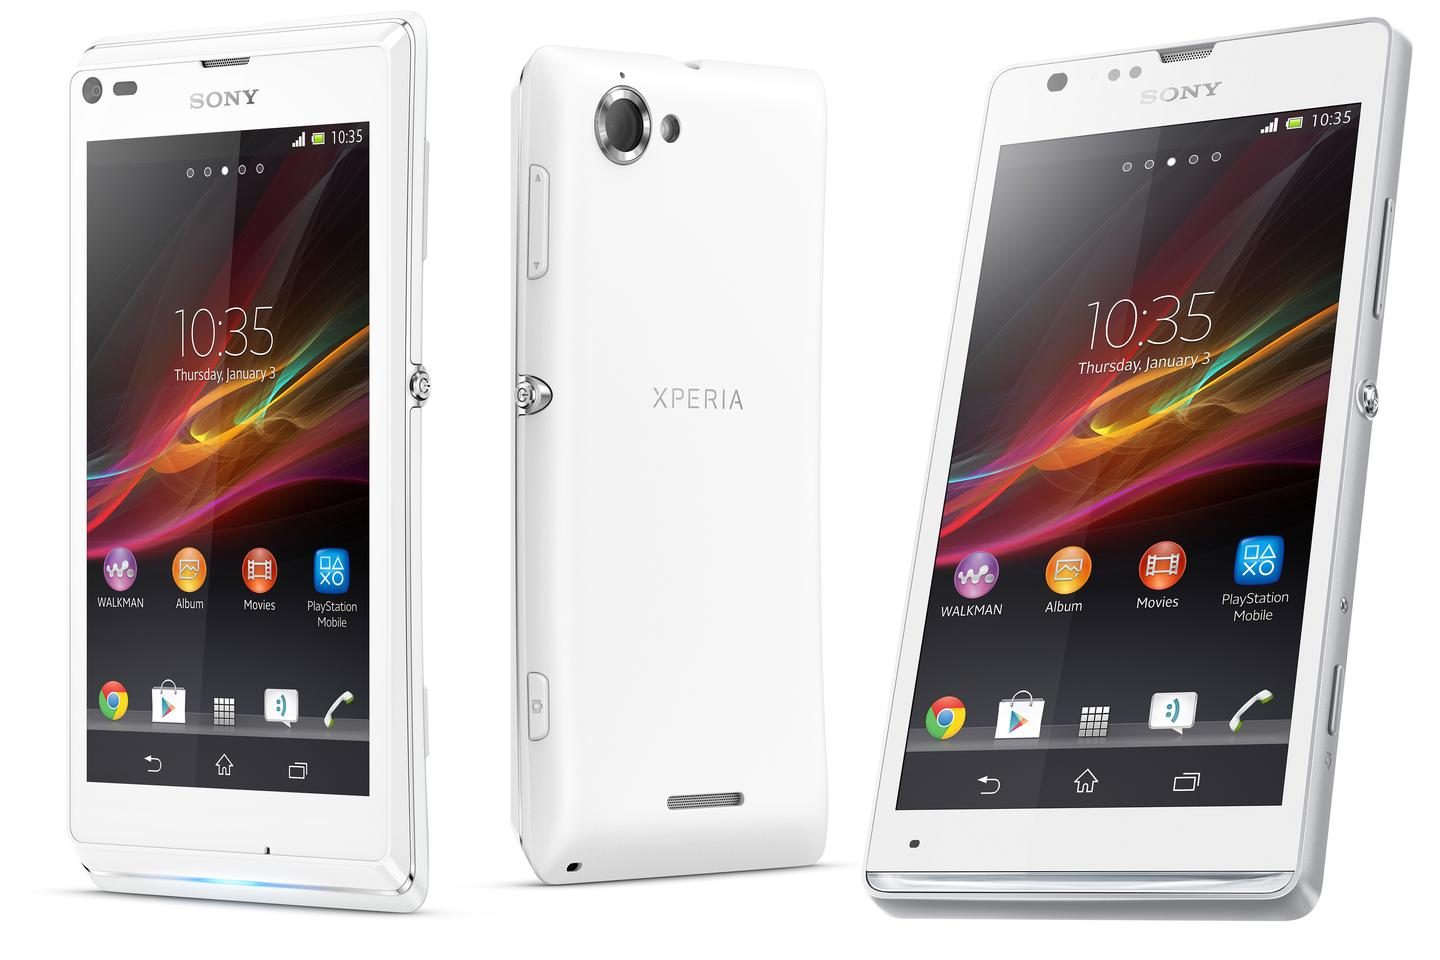 The Xperia L (left) and SP (right)